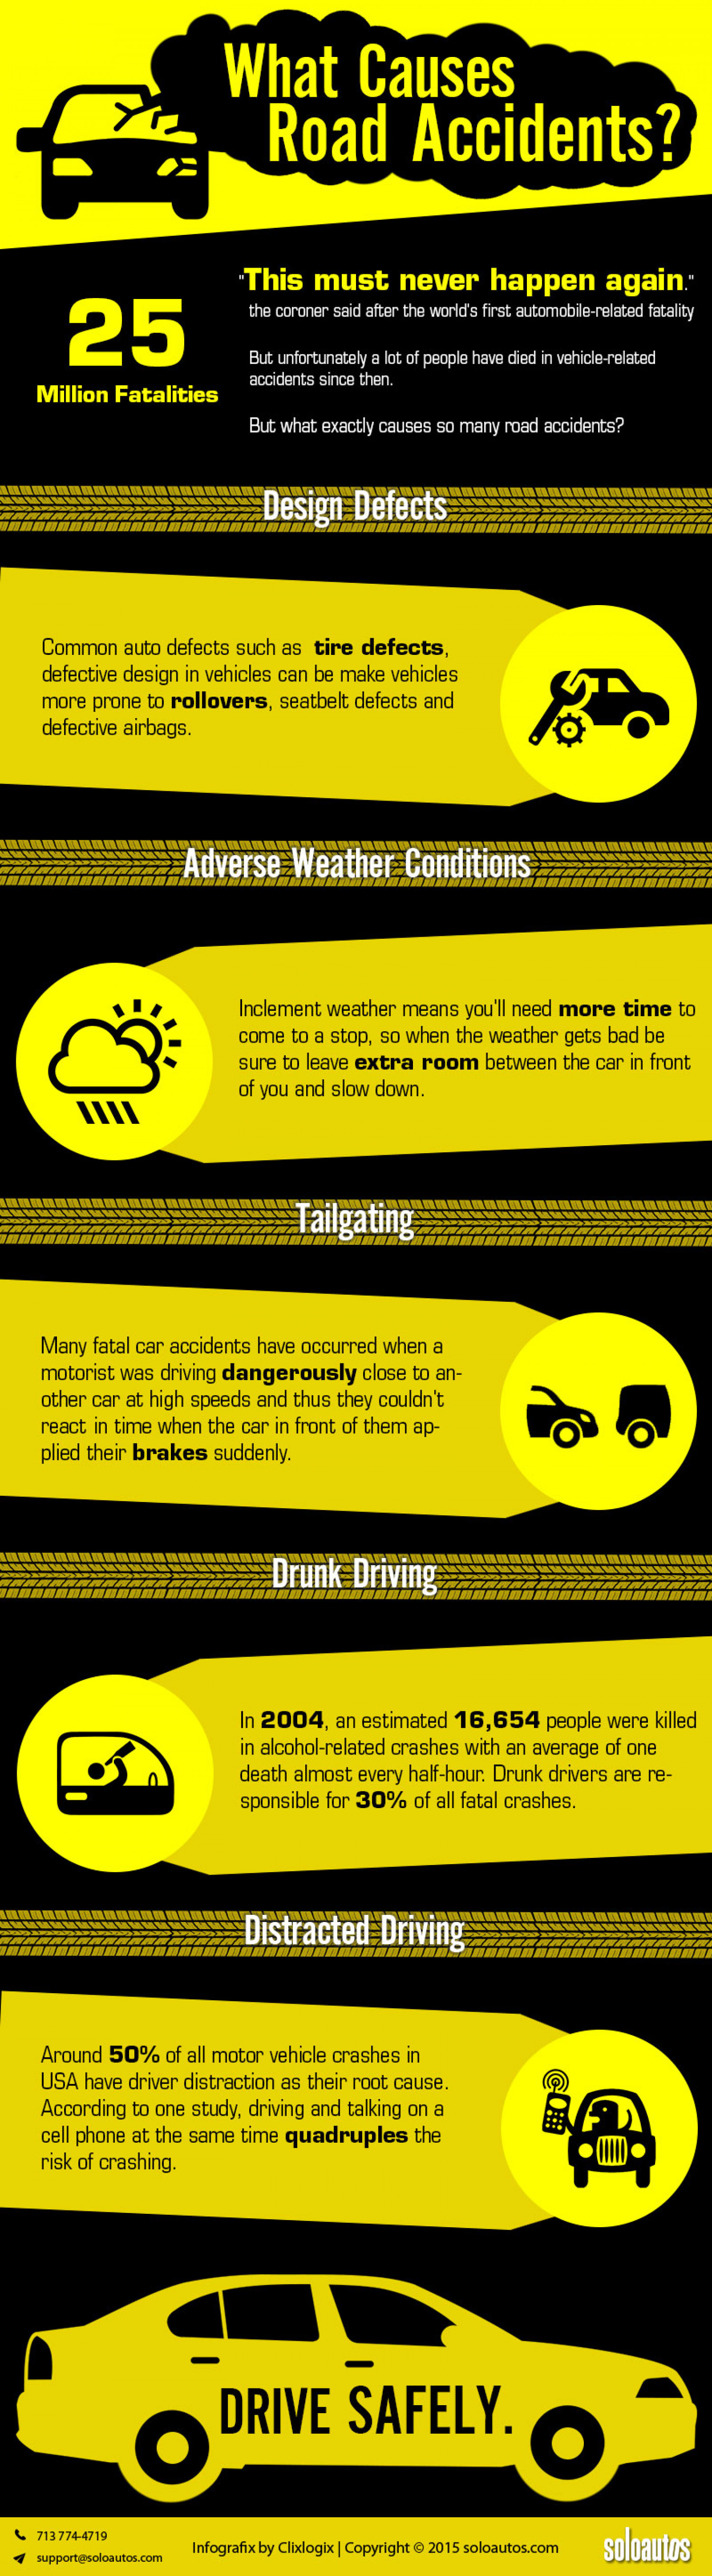 What Causes Road Accidents? Infographic